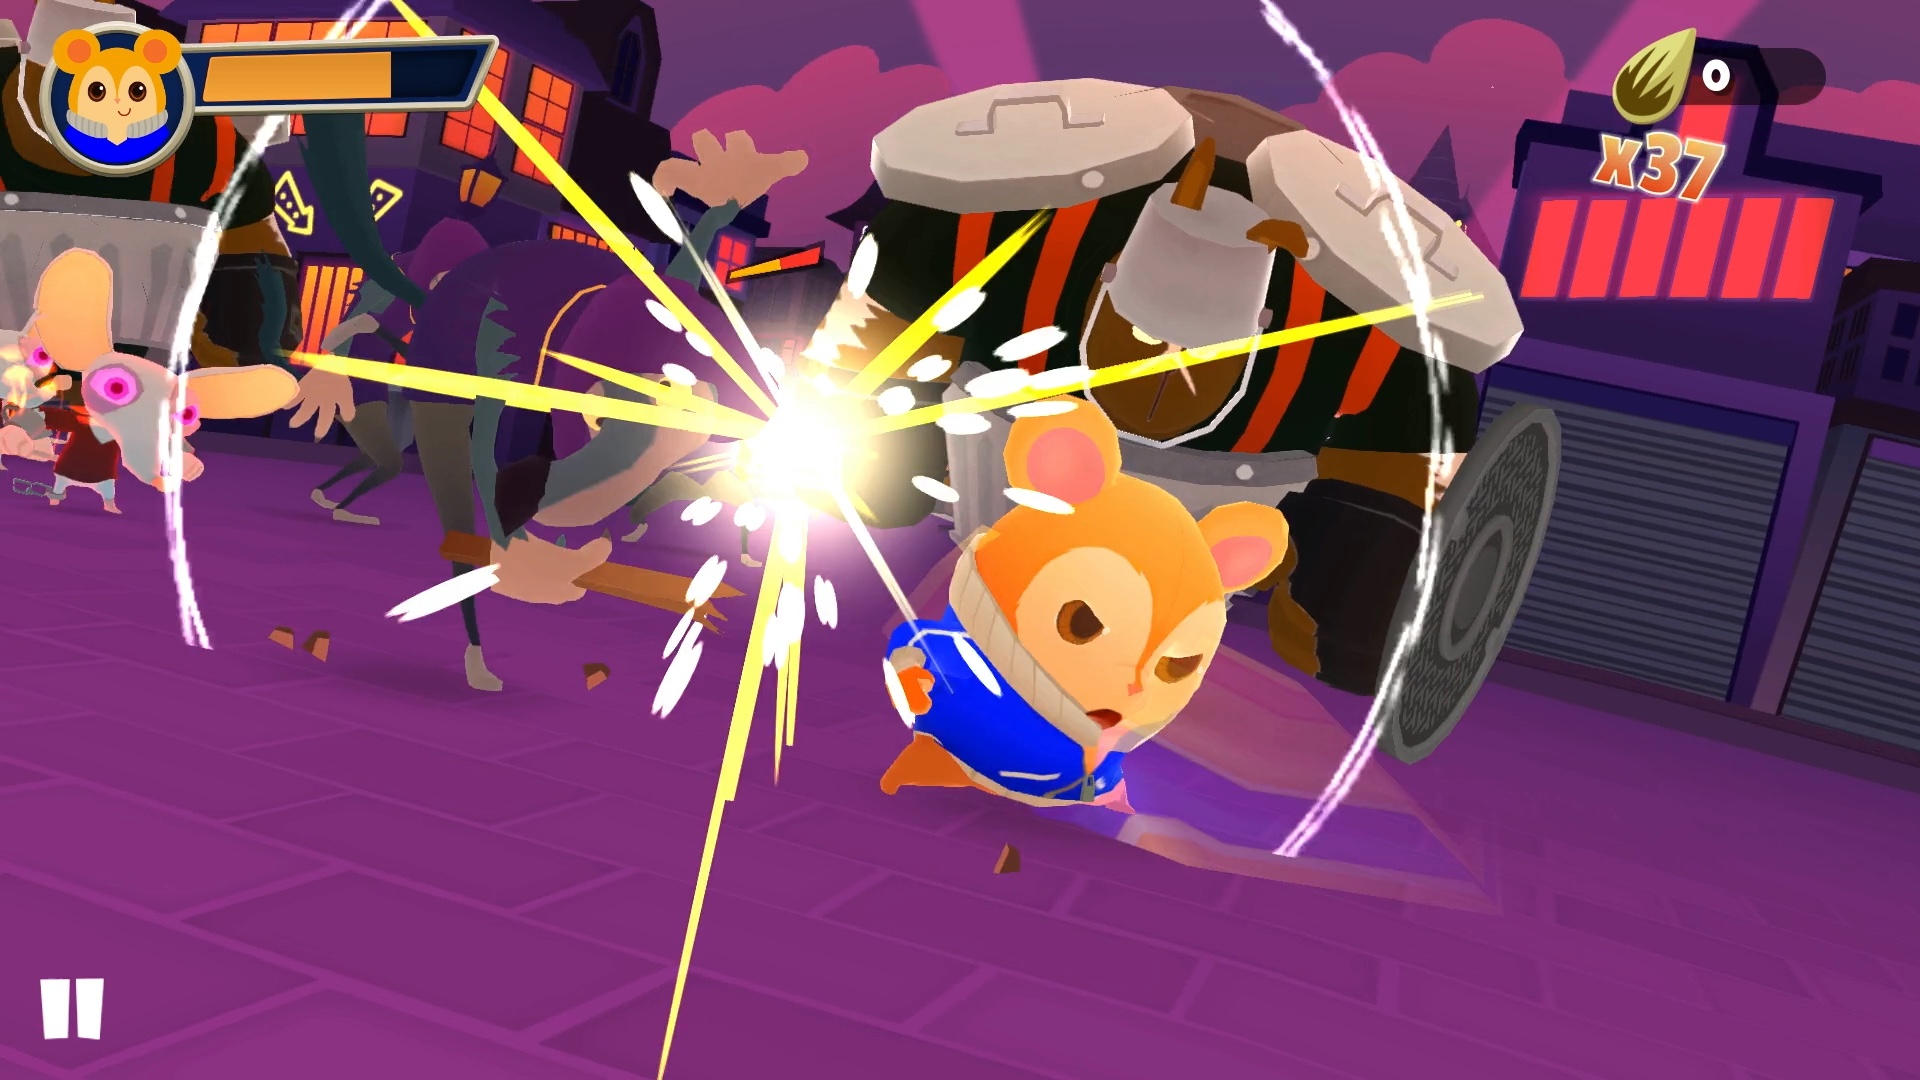 In Hamsterdam, you play as Pimm the kung-fu master hamster.